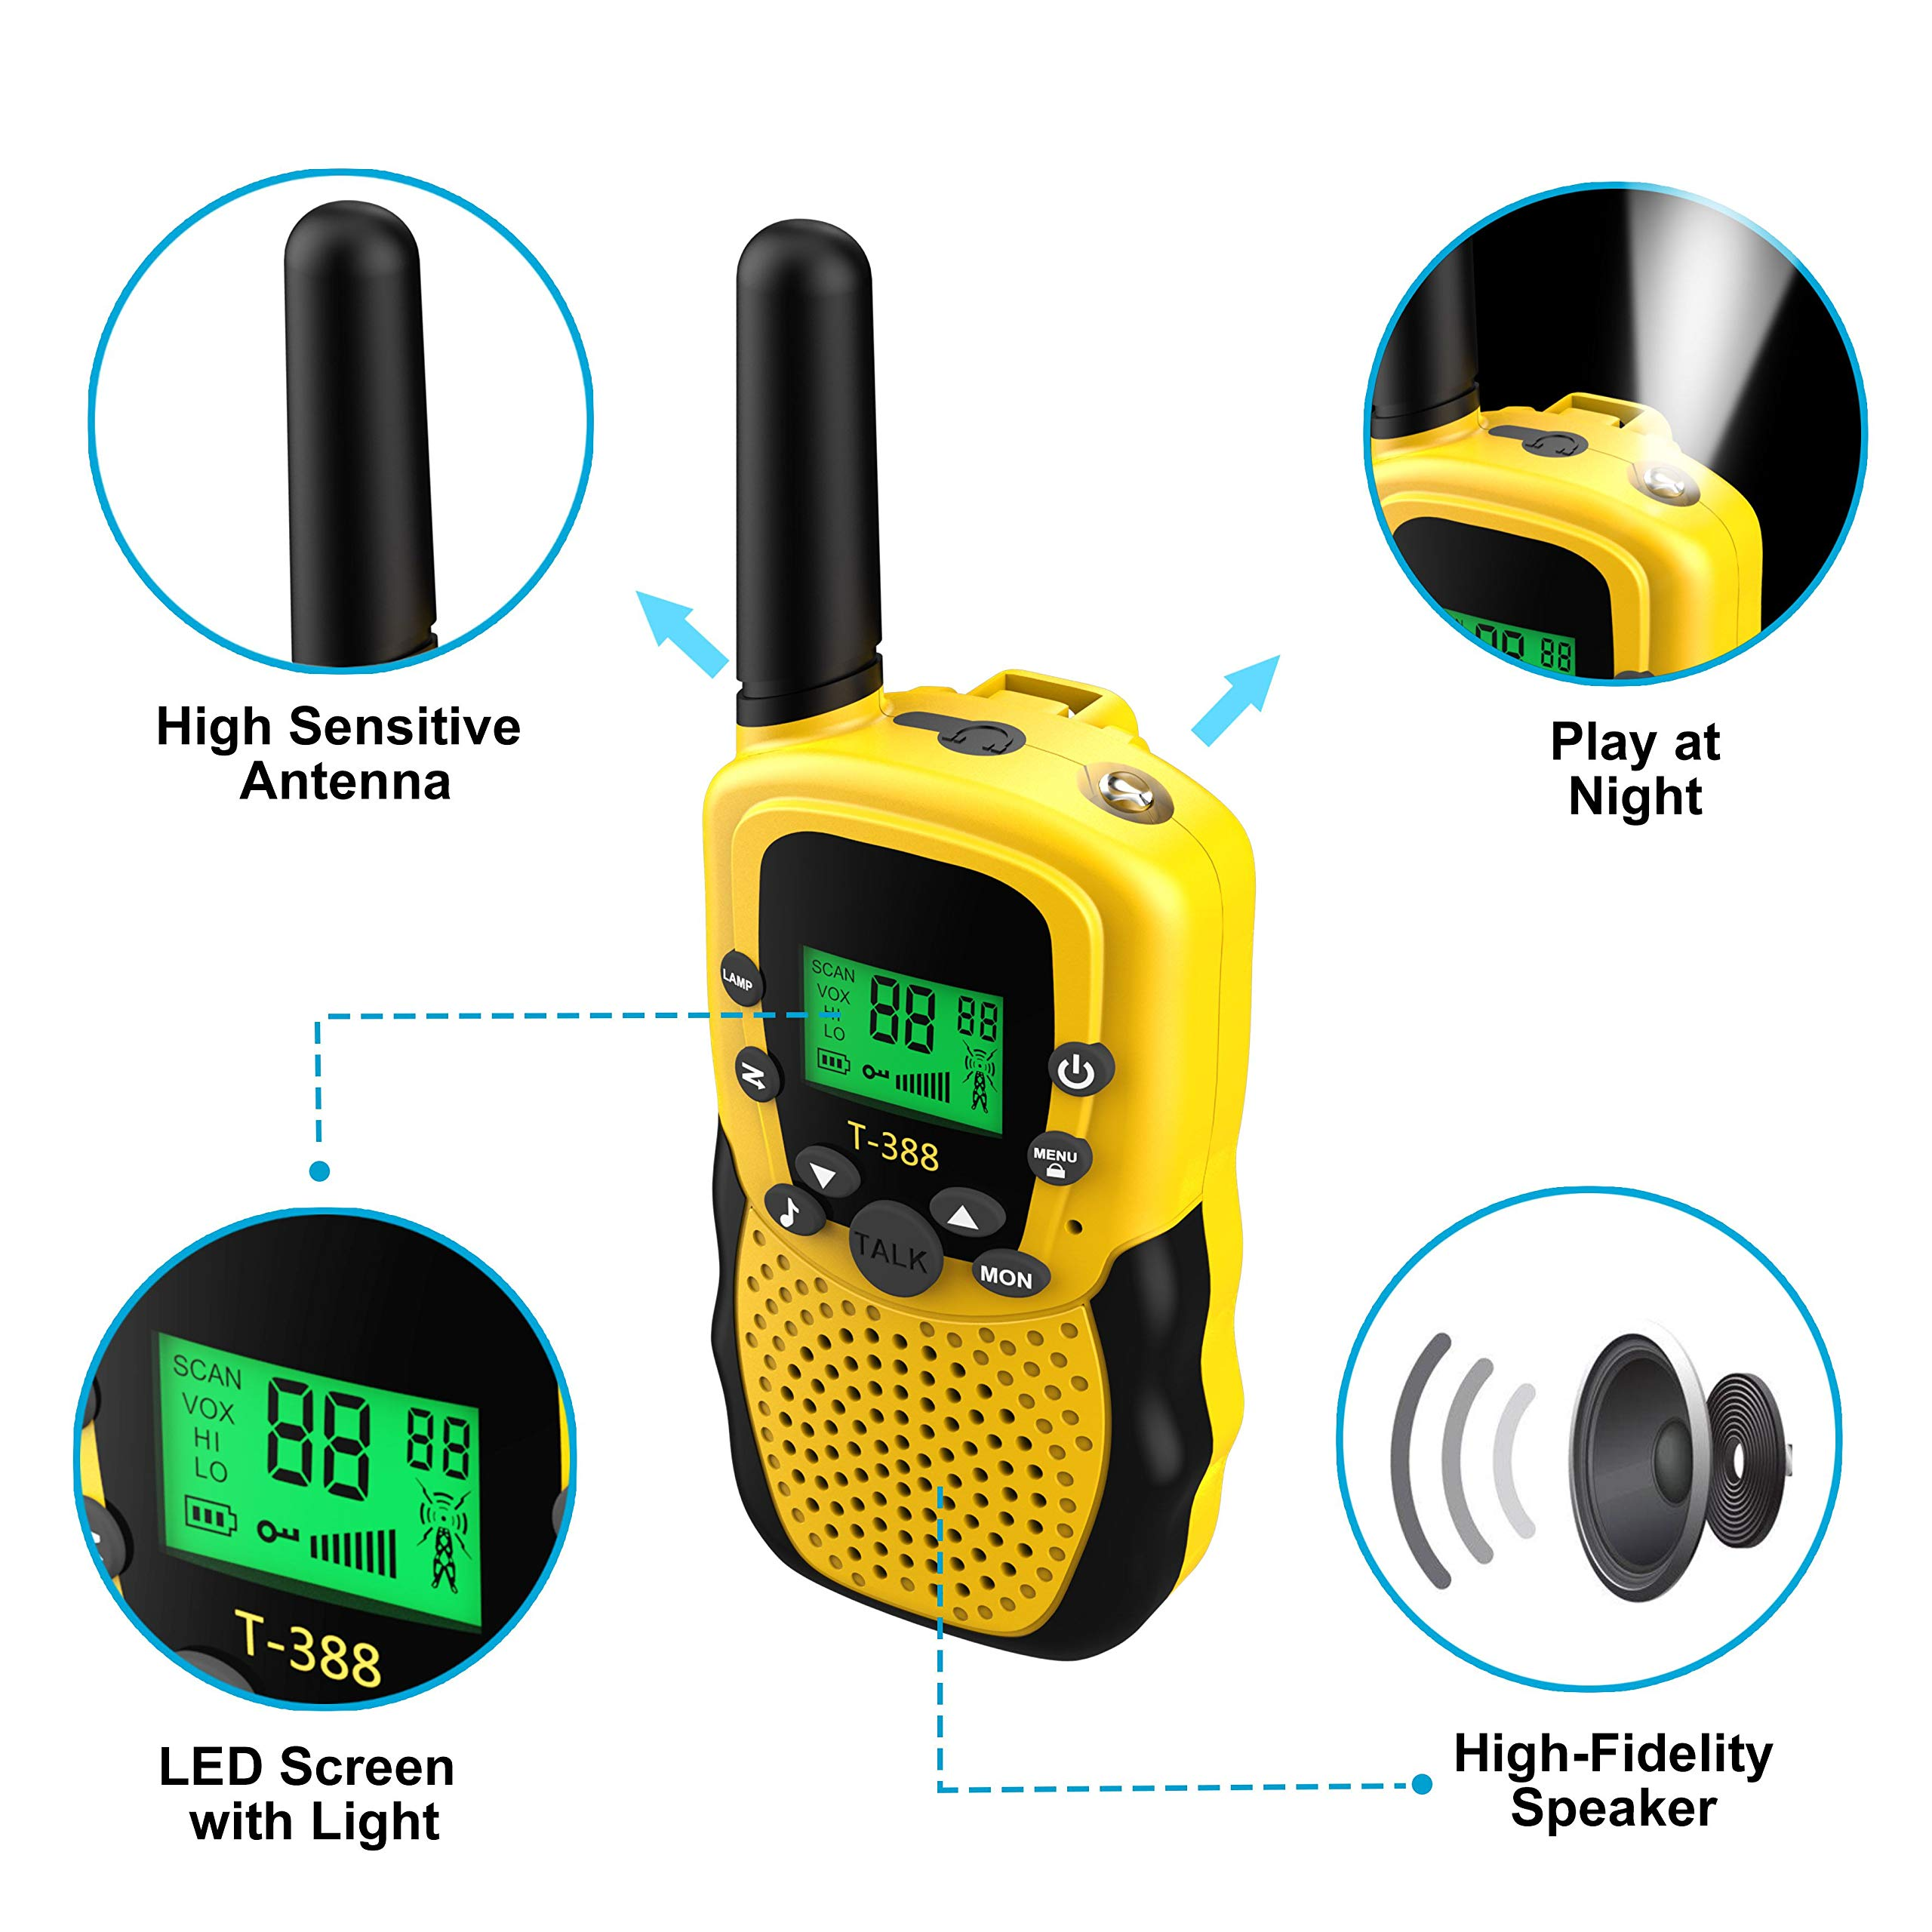 Walkies Talkies for Kids, 22 Channels FRS/GMRS UHF Two Way Radios 4 Miles Handheld Mini Kids Walkie Talkies for Kids Best Gifts Kids Toys Built in Flashlight by JimBest1970 (Image #6)